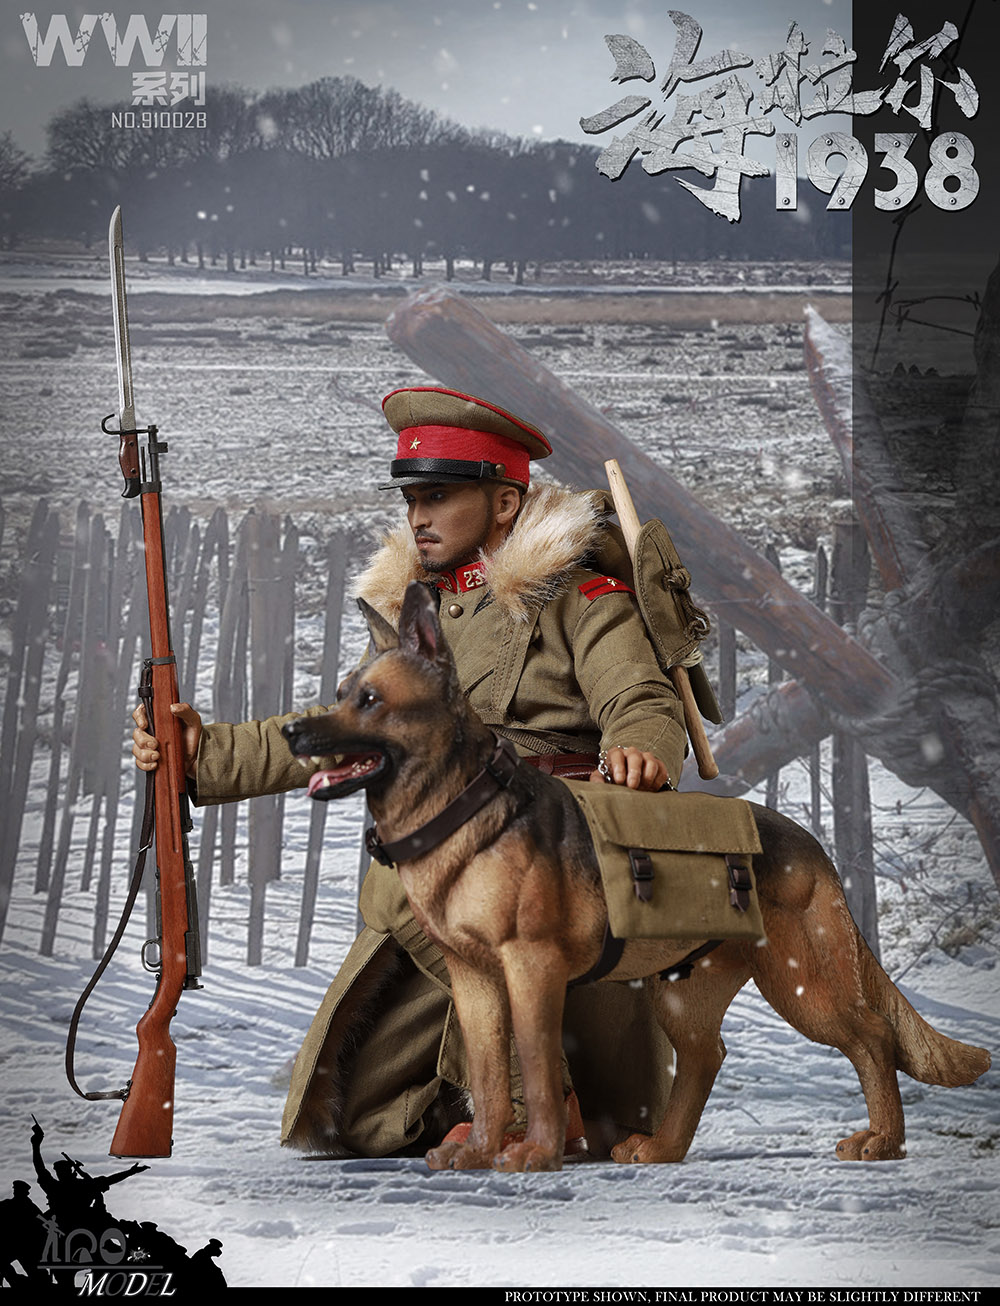 NEW PRODUCT: IQO Model: 1/6 WWII Series 1938 Hailar Scout (NO.91002A, B) 22114511